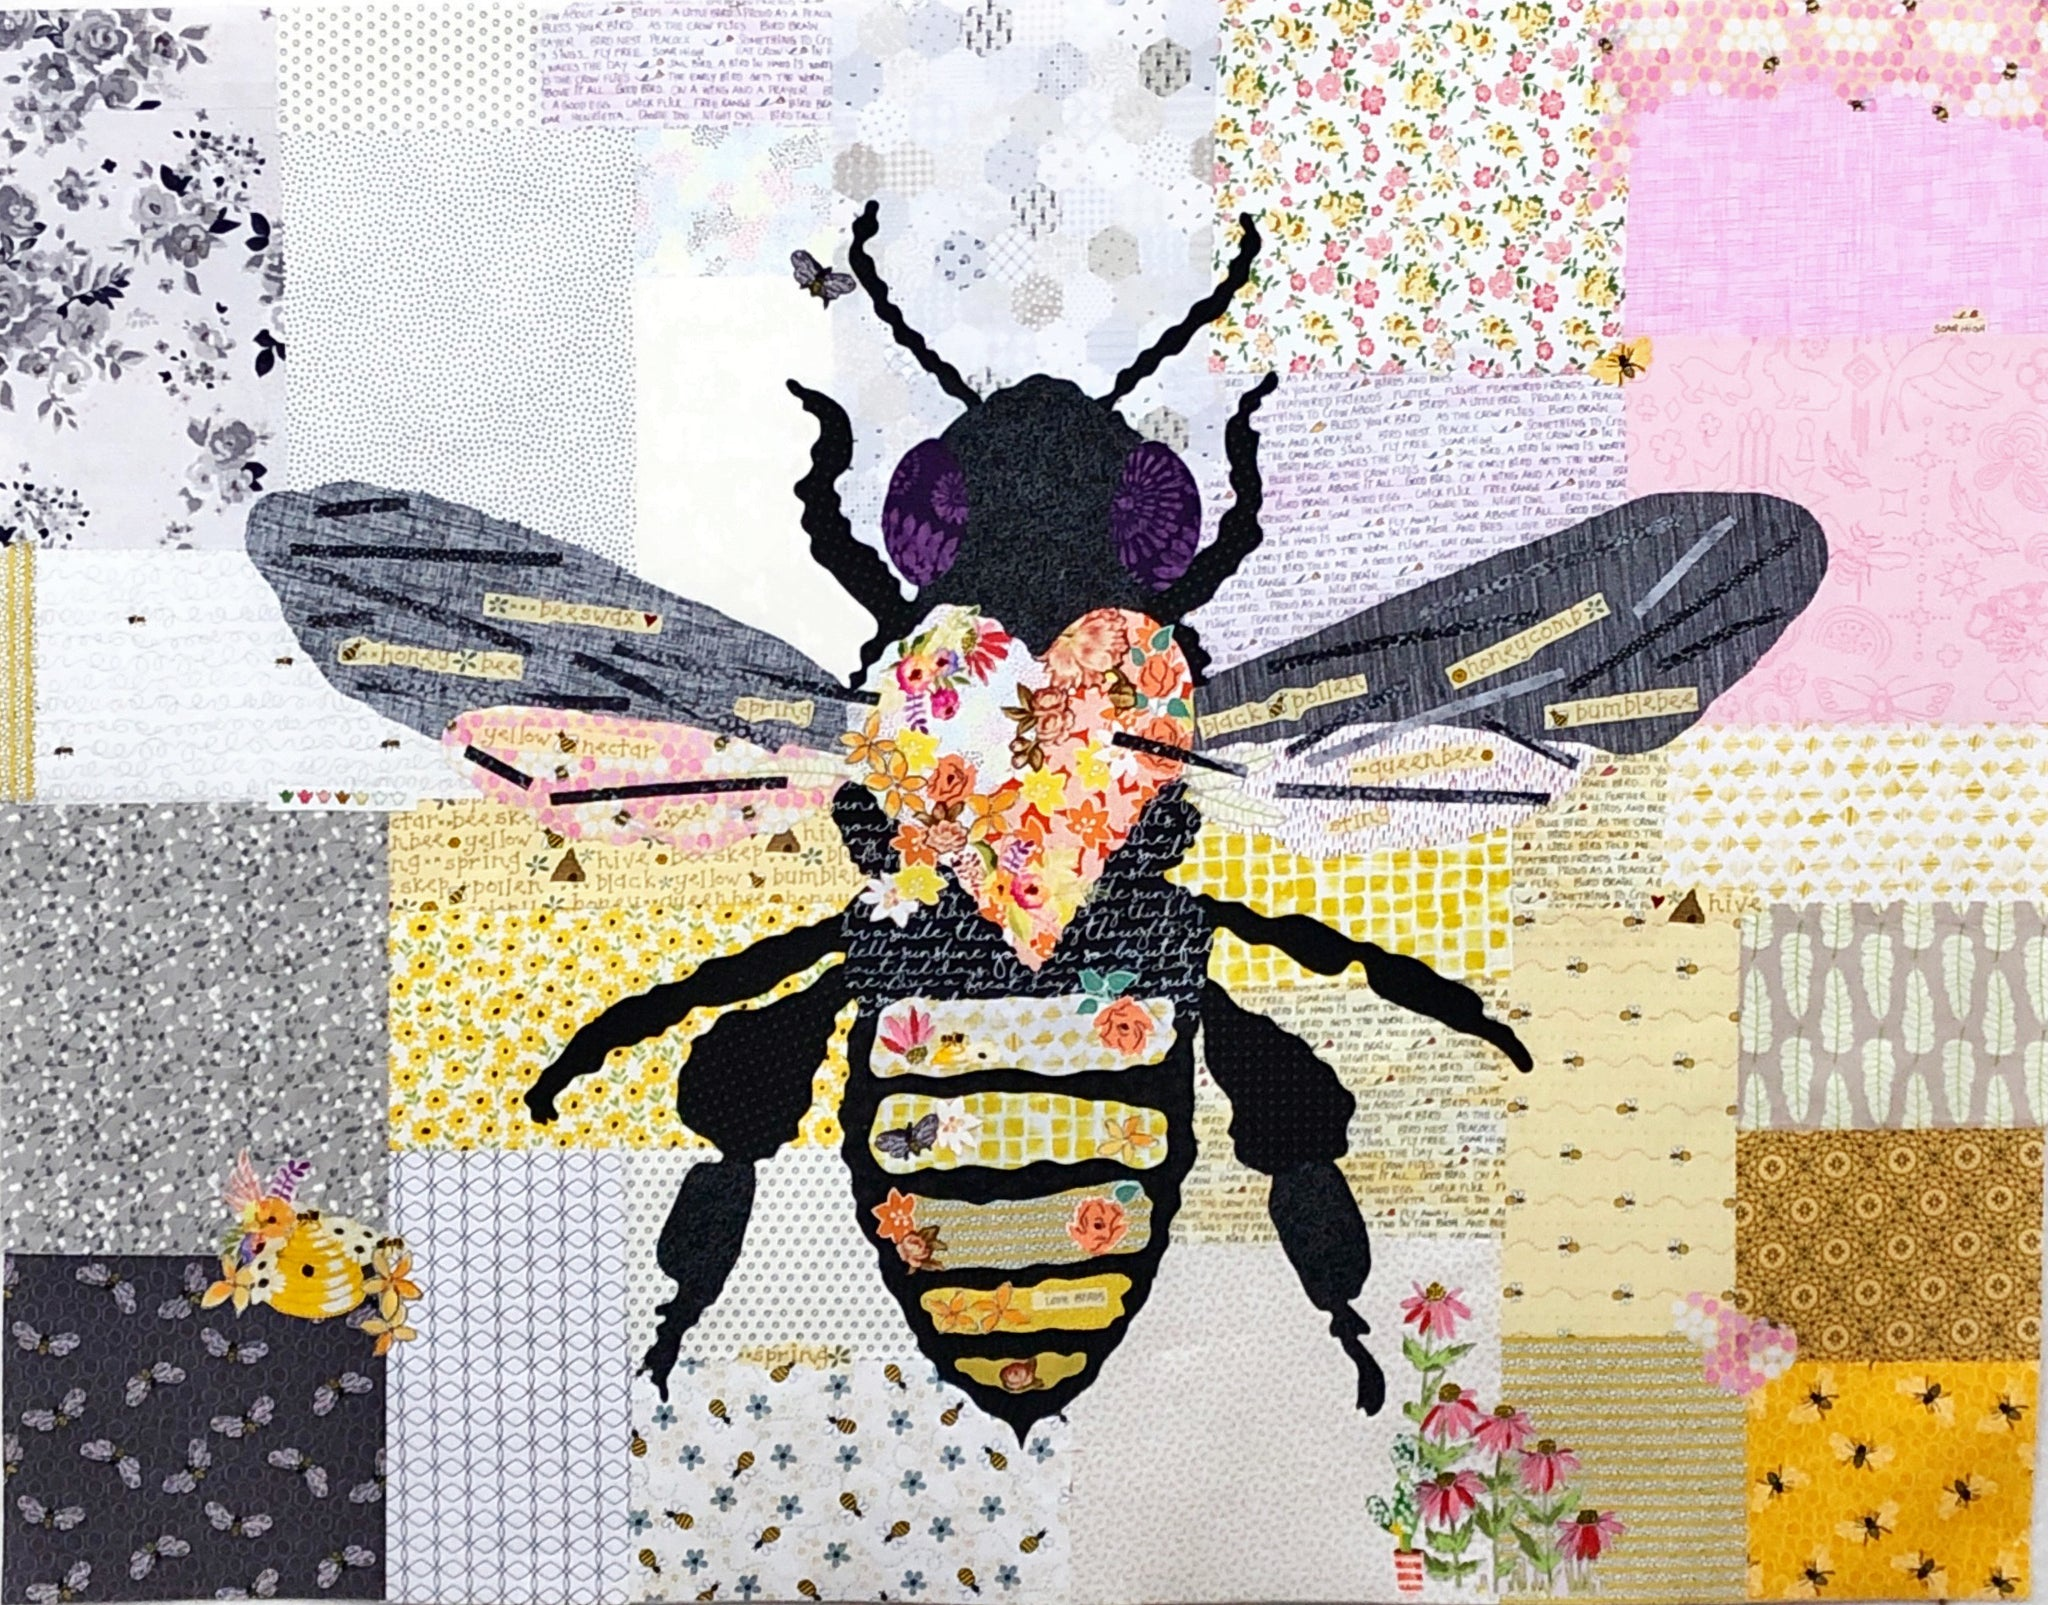 Honey Bee Collage Quilt Kit by Doris Rice